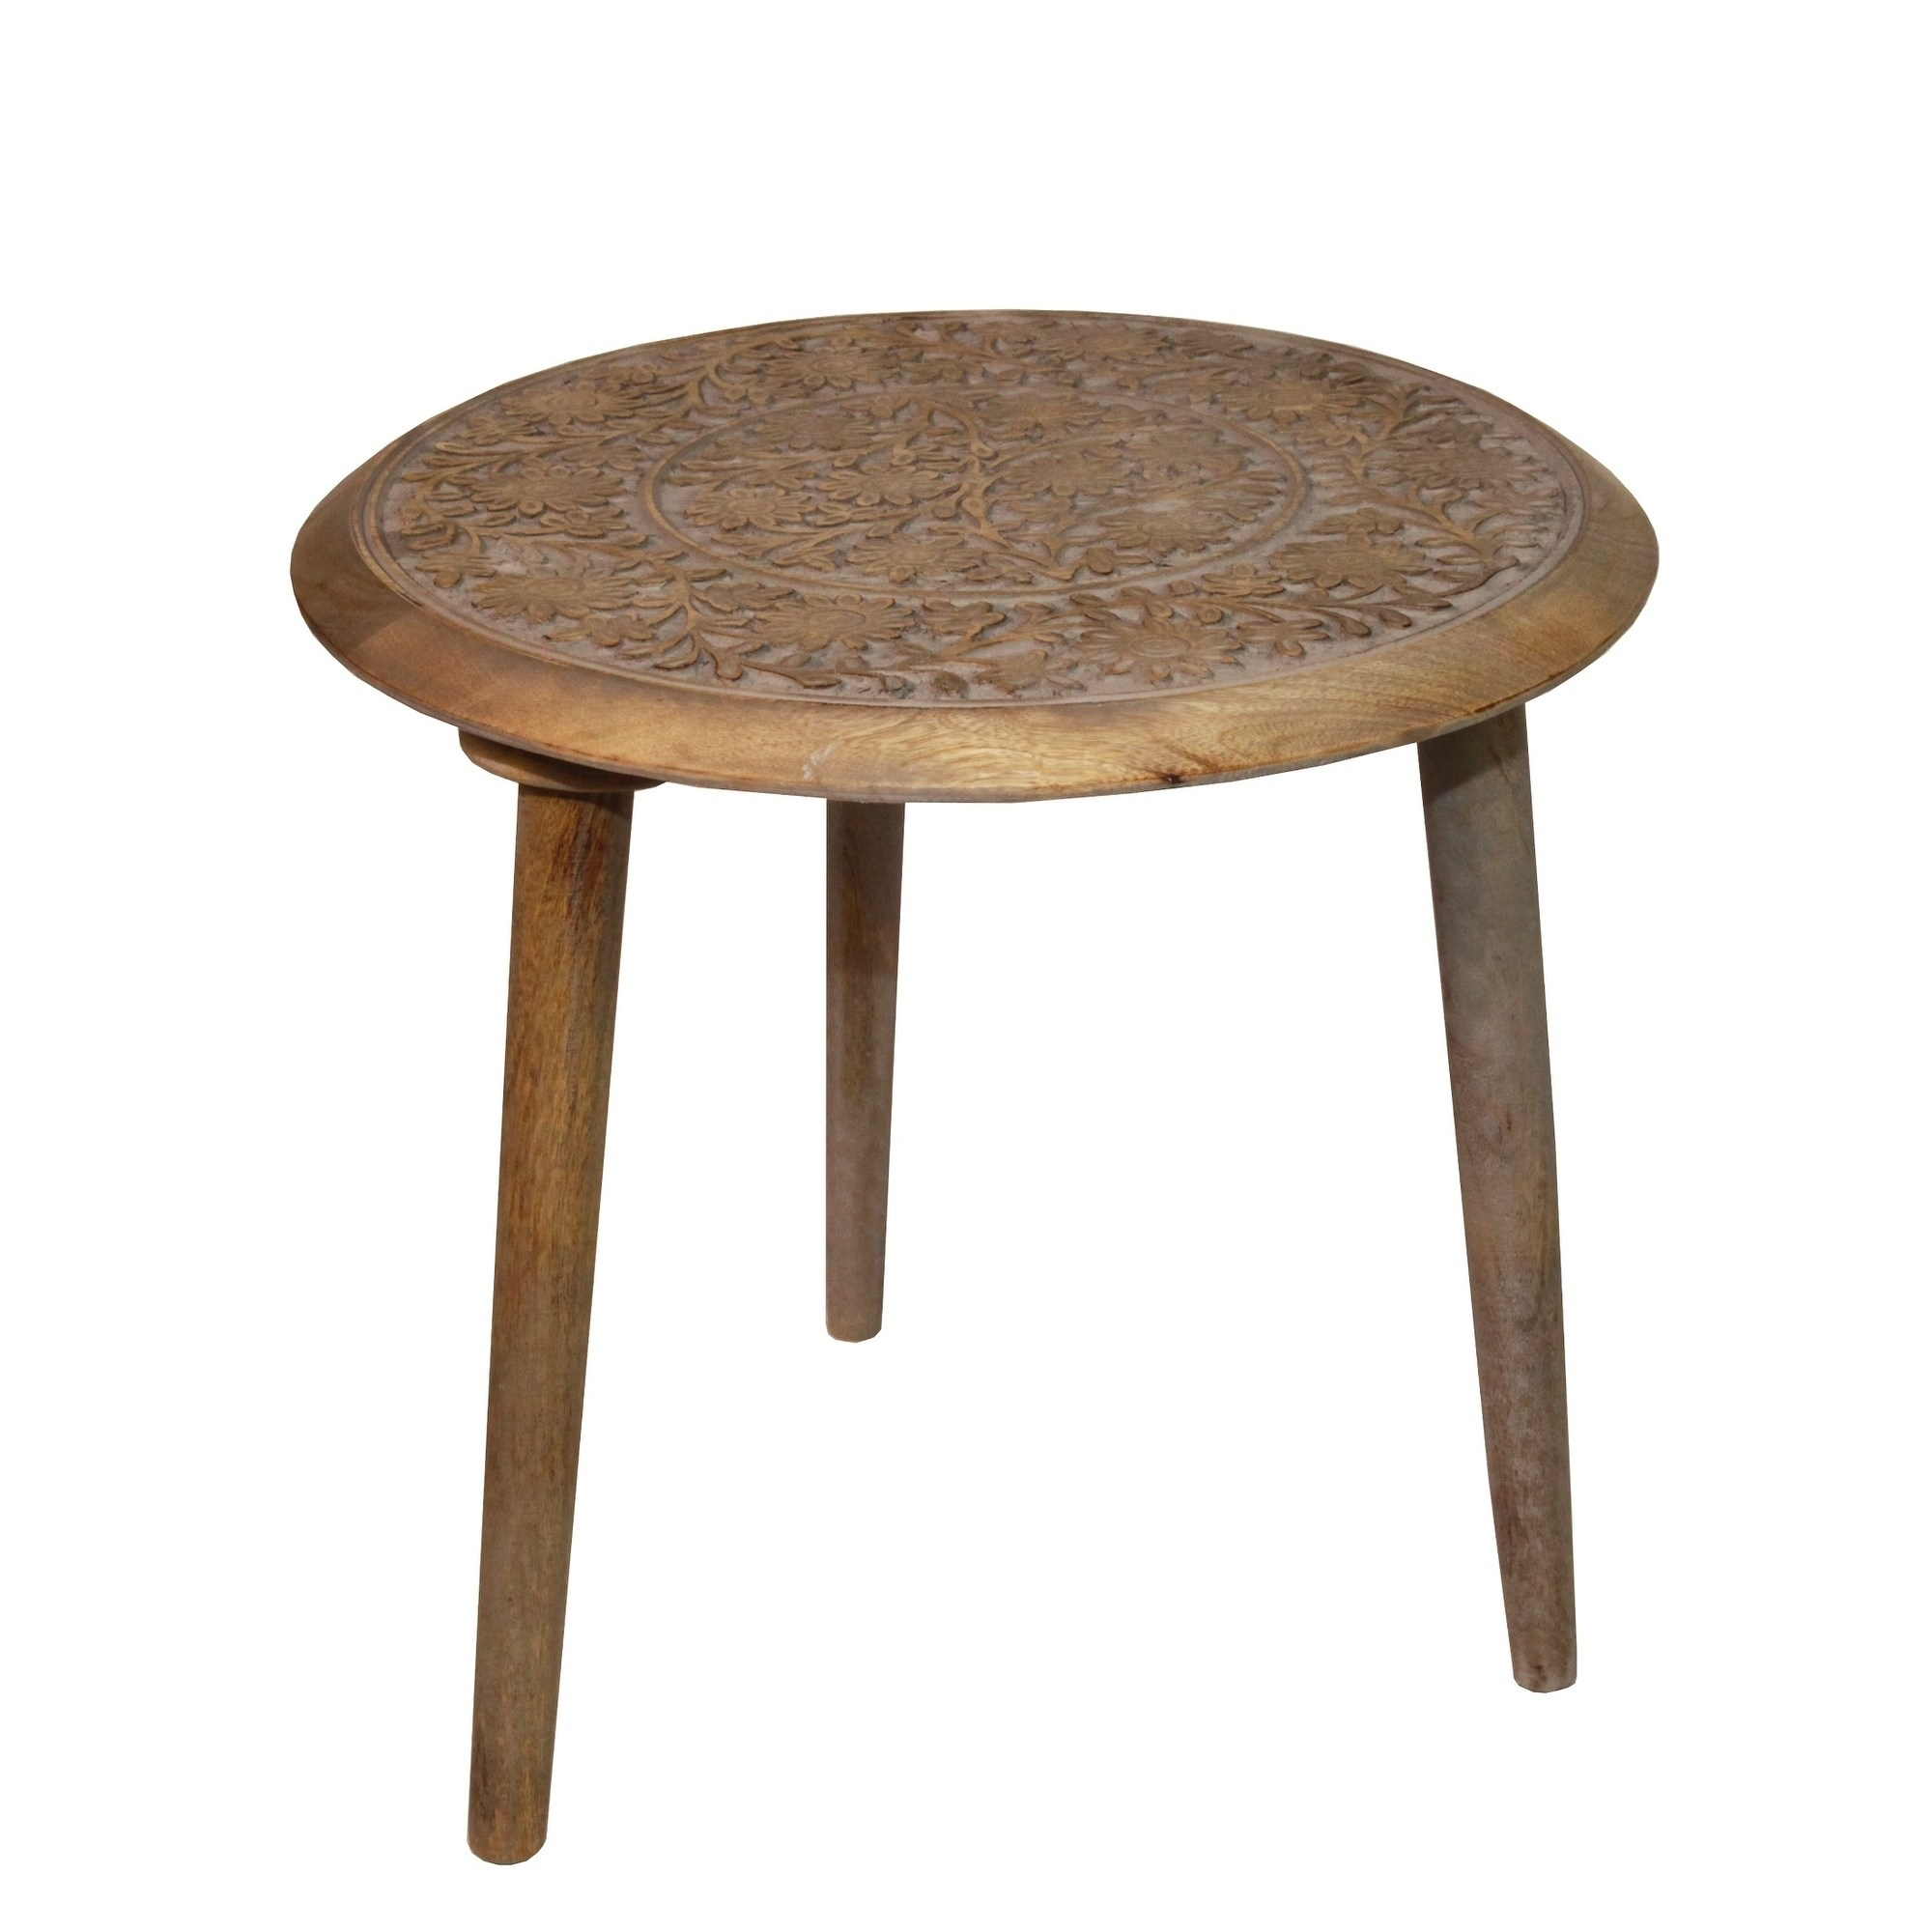 privilege round antique grey wood accent table free shipping gray wooden today extra tall pottery barn frames brown wicker small marble yellow home accents espresso coffee